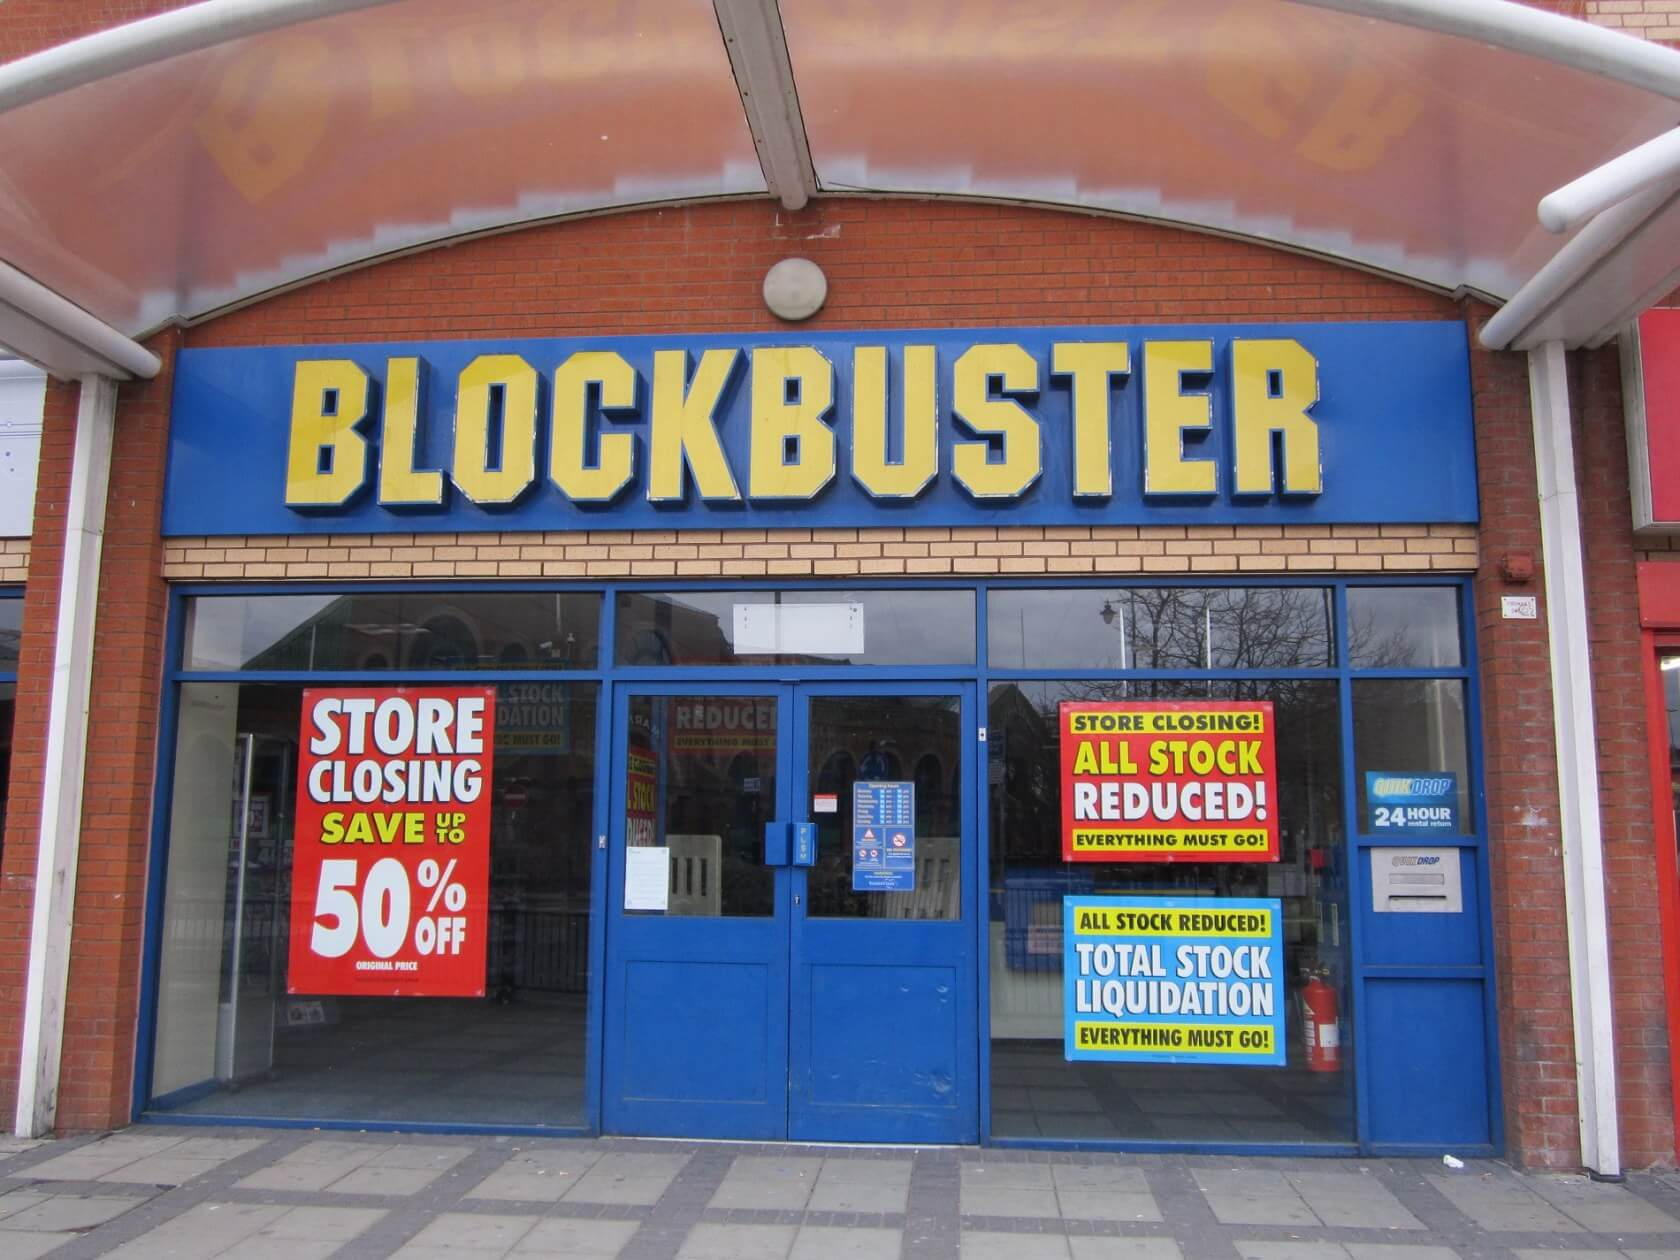 The US has just one Blockbuster left